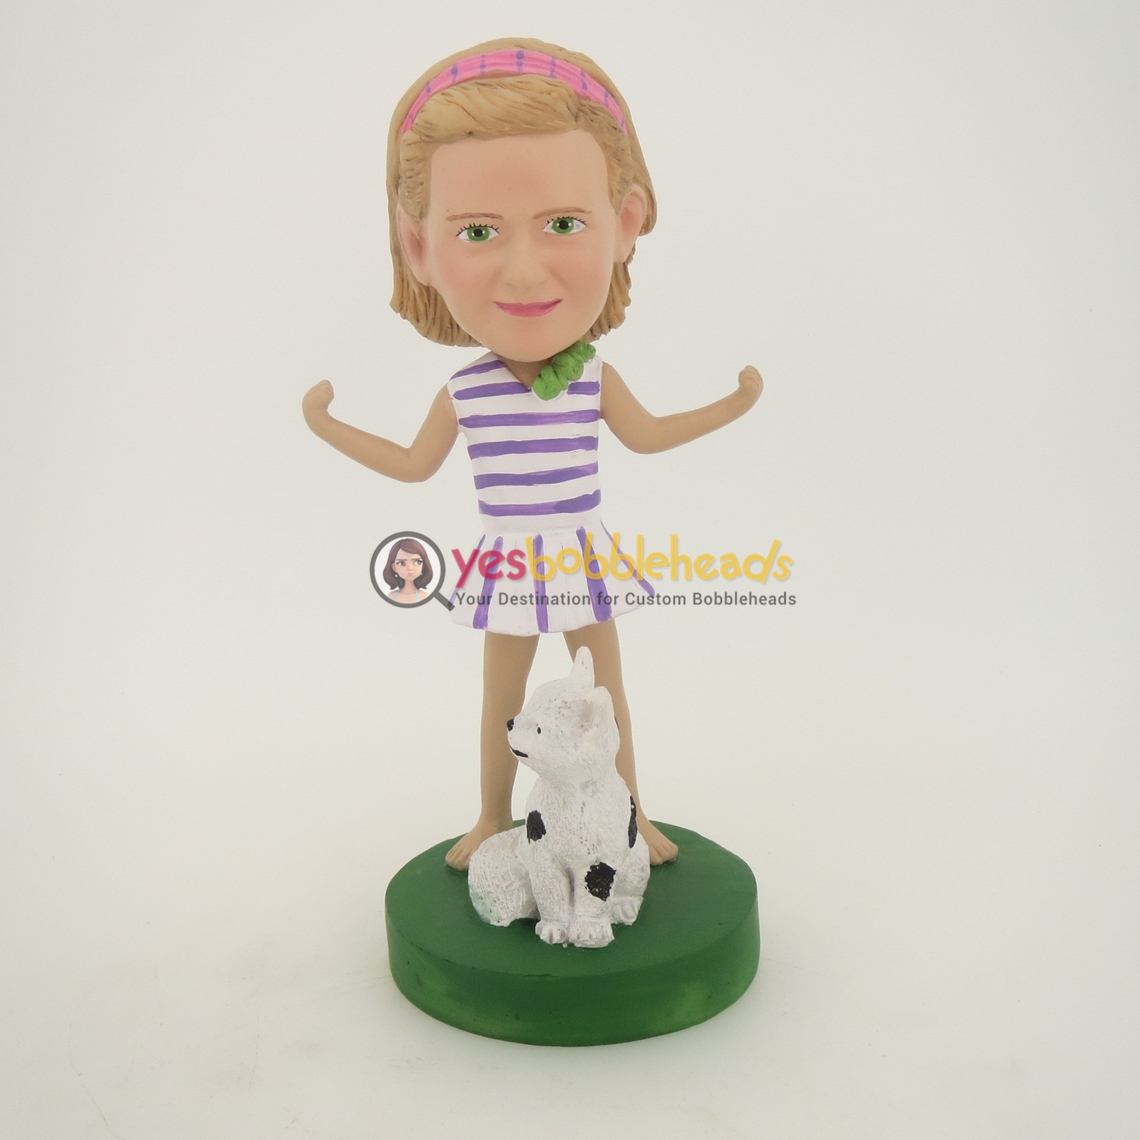 Picture of Custom Bobblehead Doll: Girl And Cat